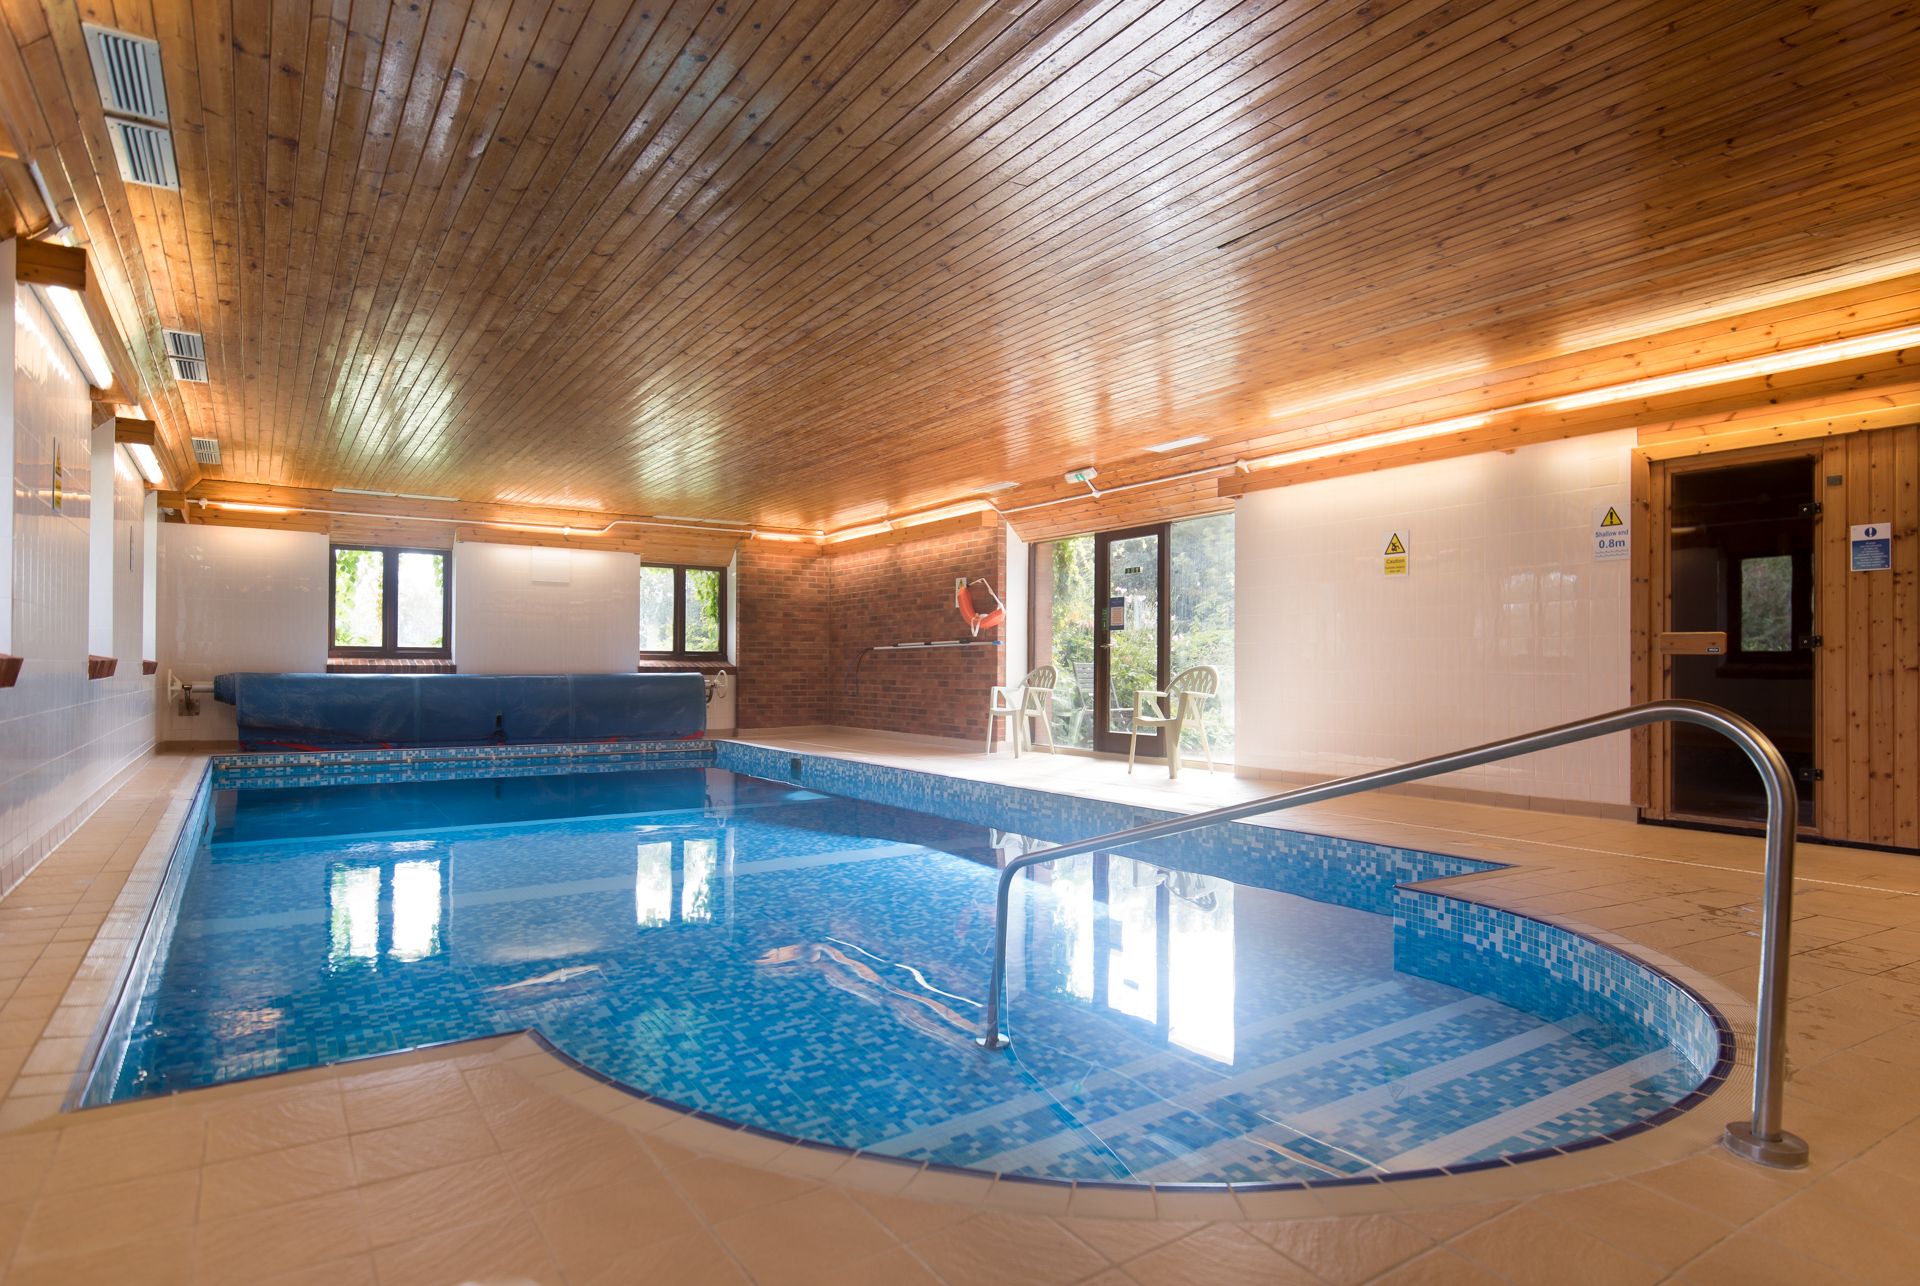 Coastal holiday cottages with a pool  in West Country, South West